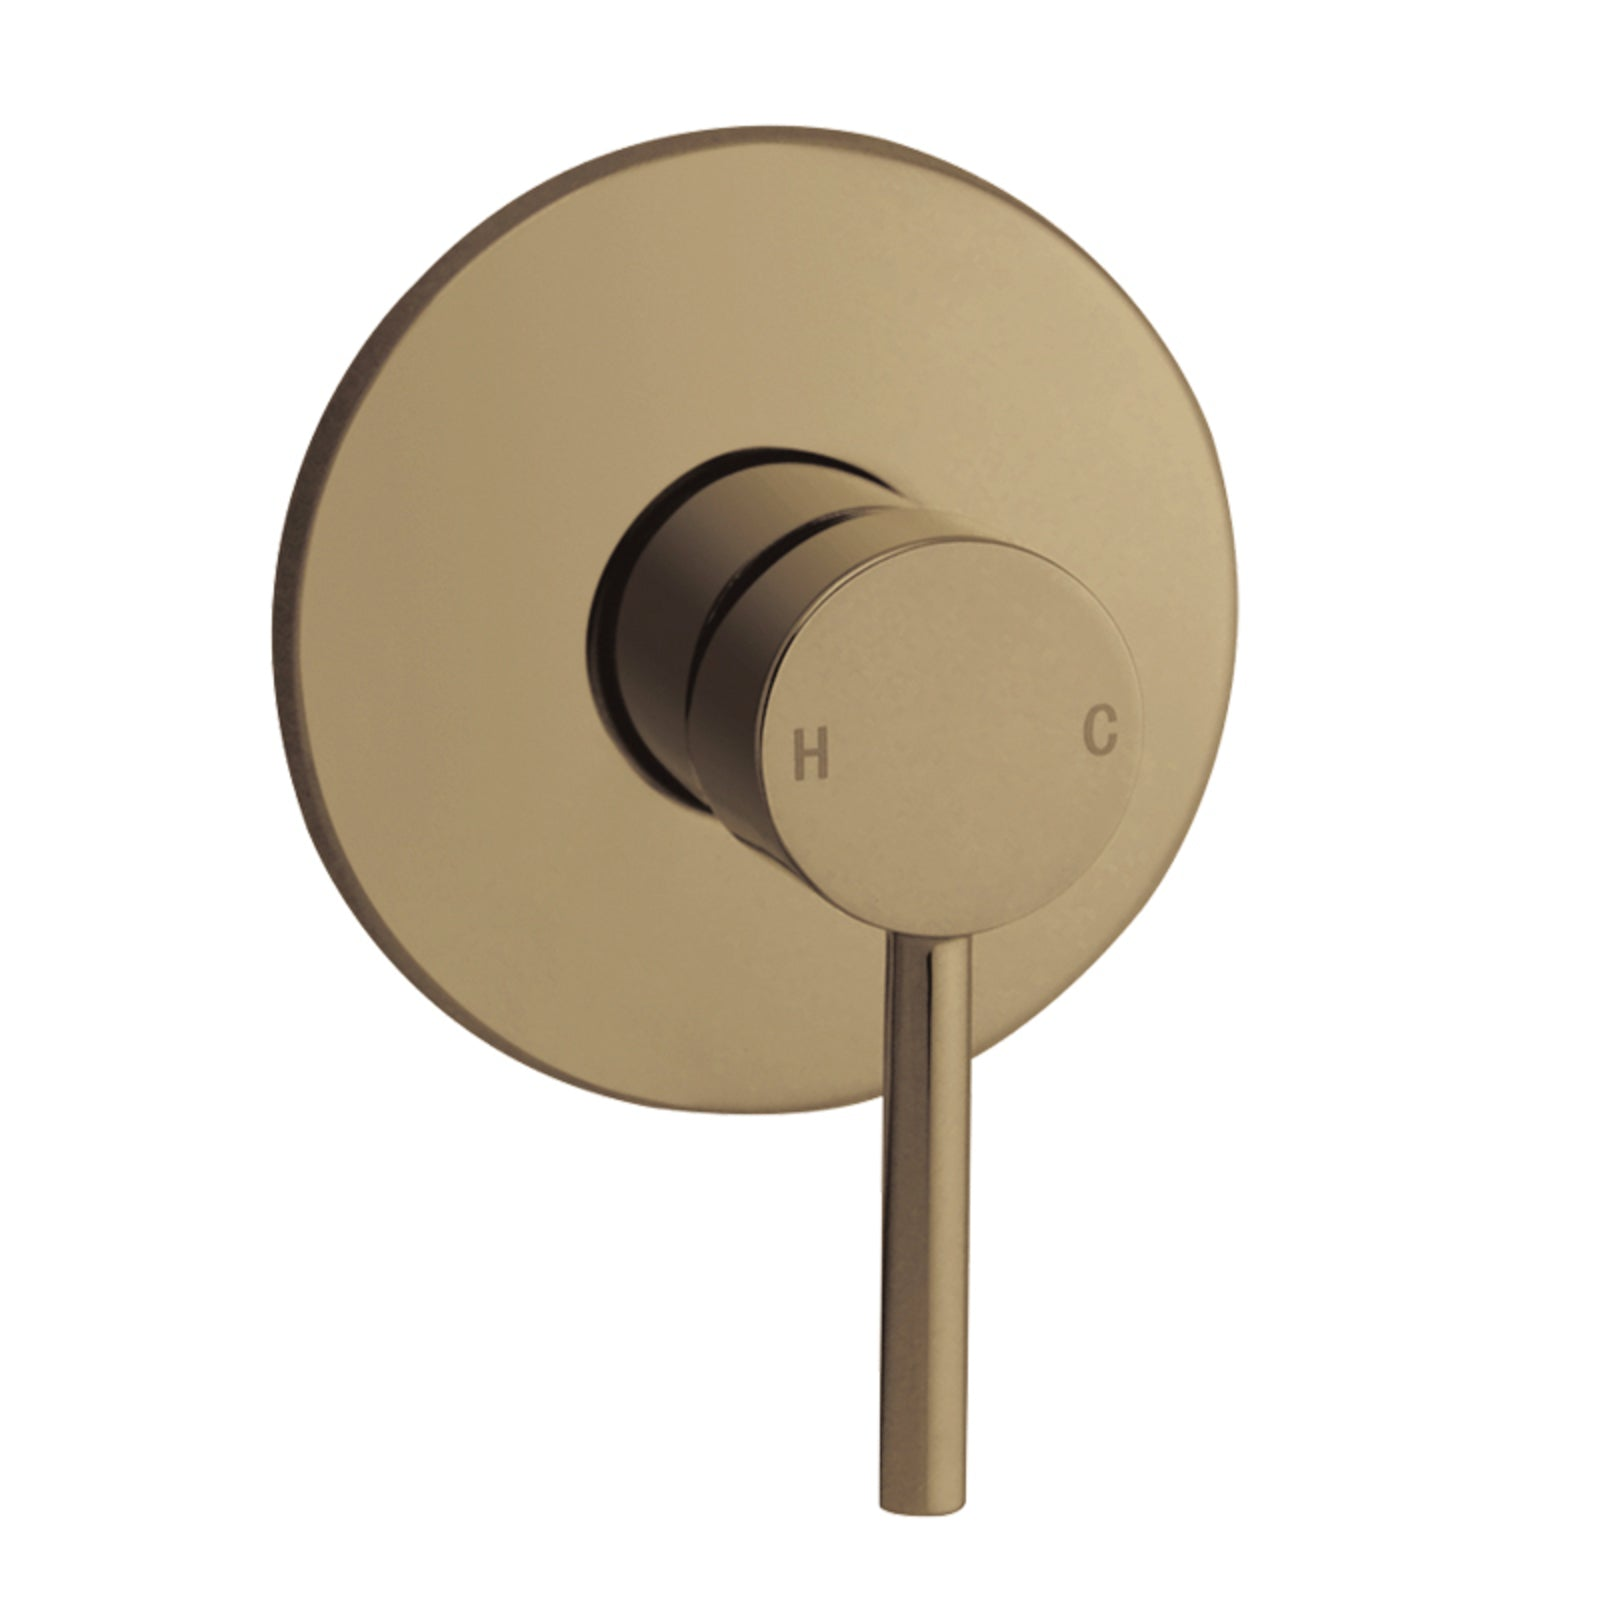 Norico Pentro Brushed Yellow Gold Round Shower Mixer Tap